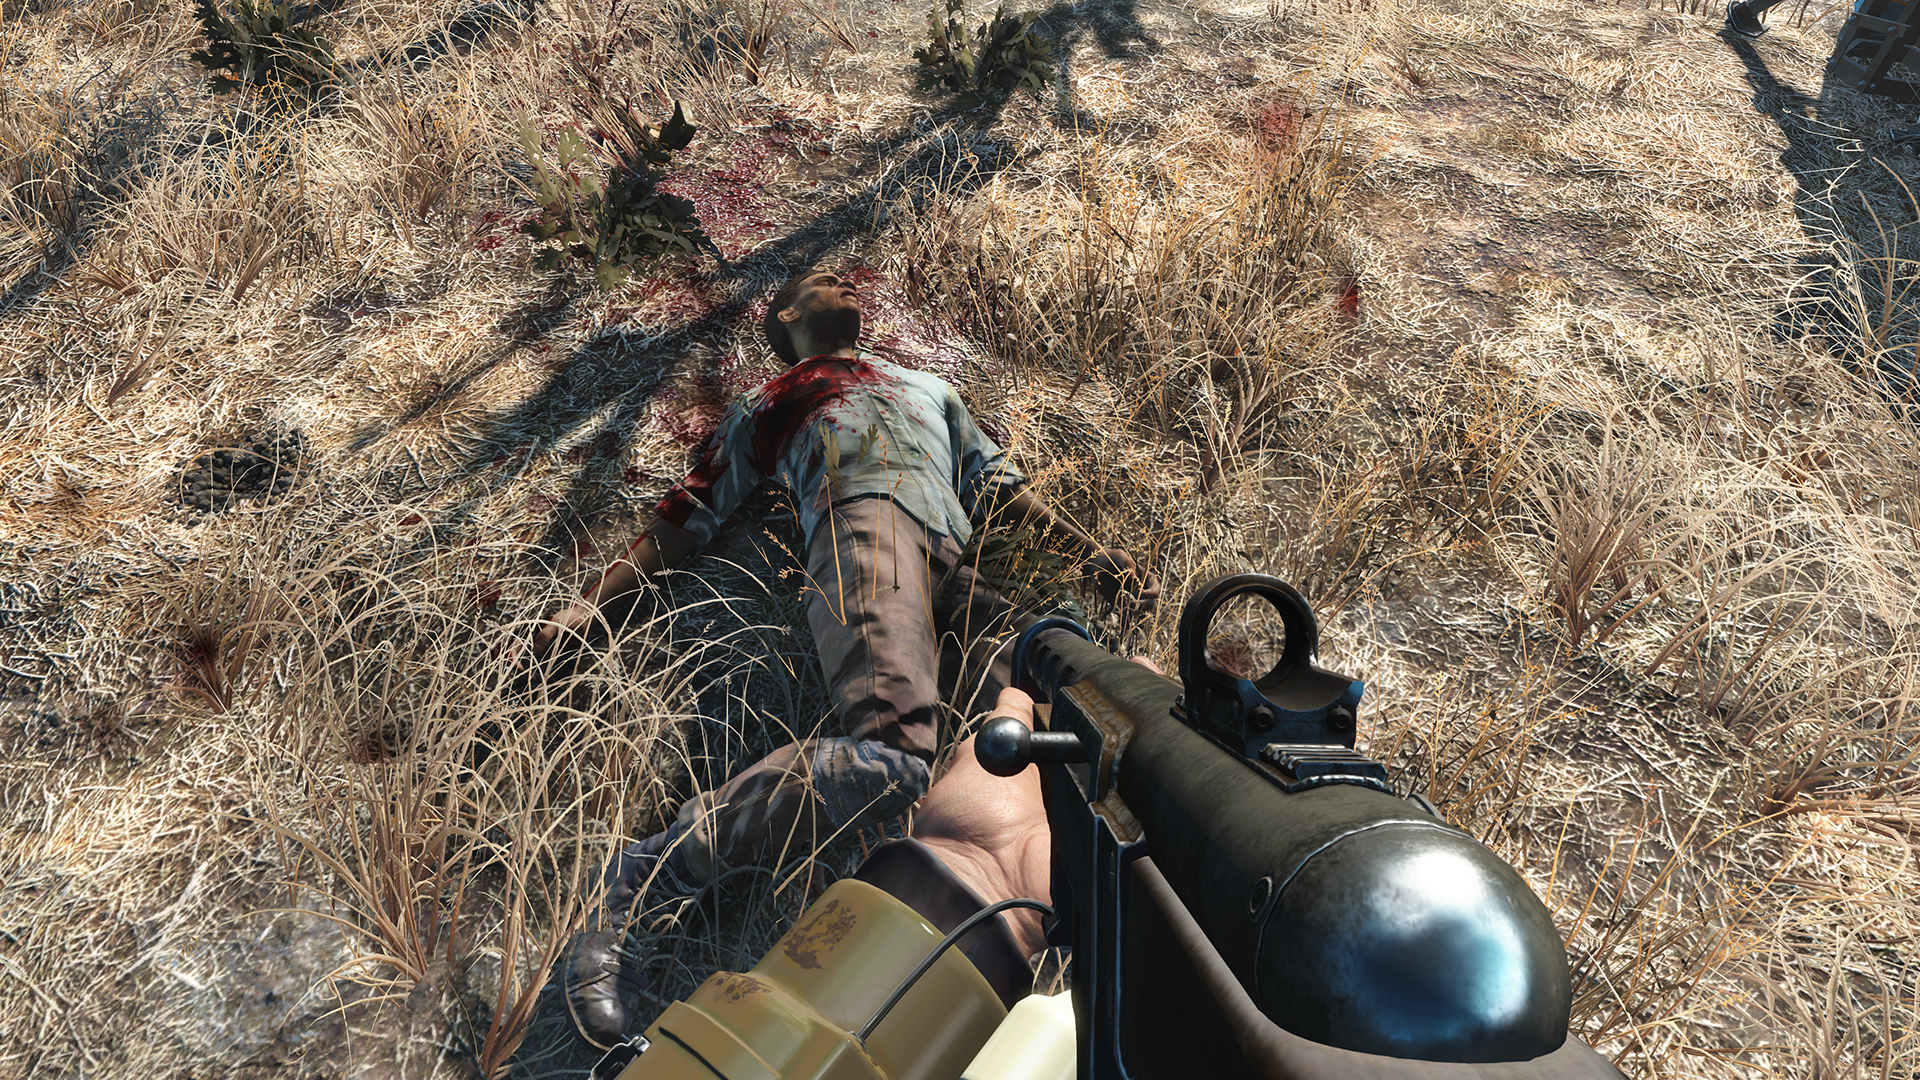 how to get up to jared in fallout 4